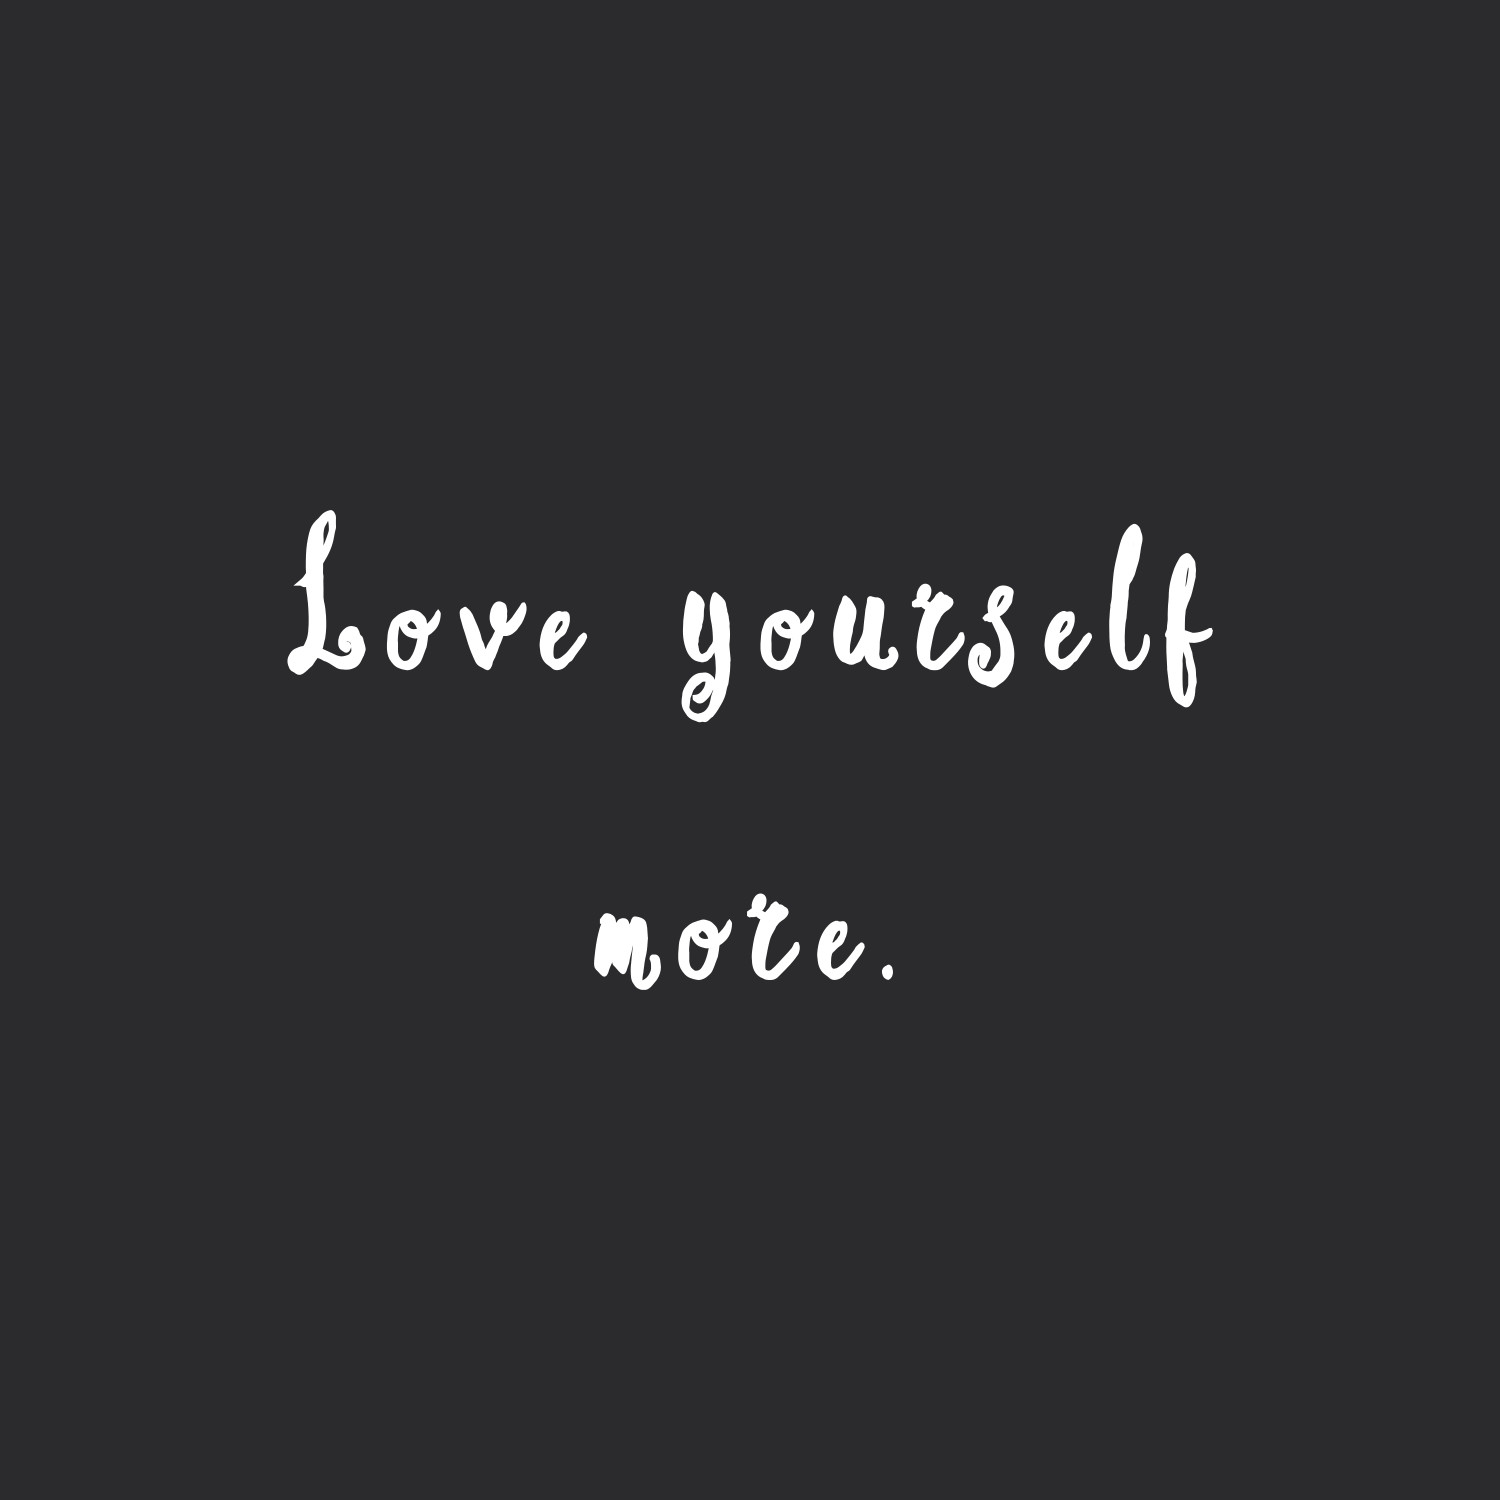 Quotes About Loving Yourself Impressive Love Yourself More  Inspirational Exercise And Weight Loss Quote